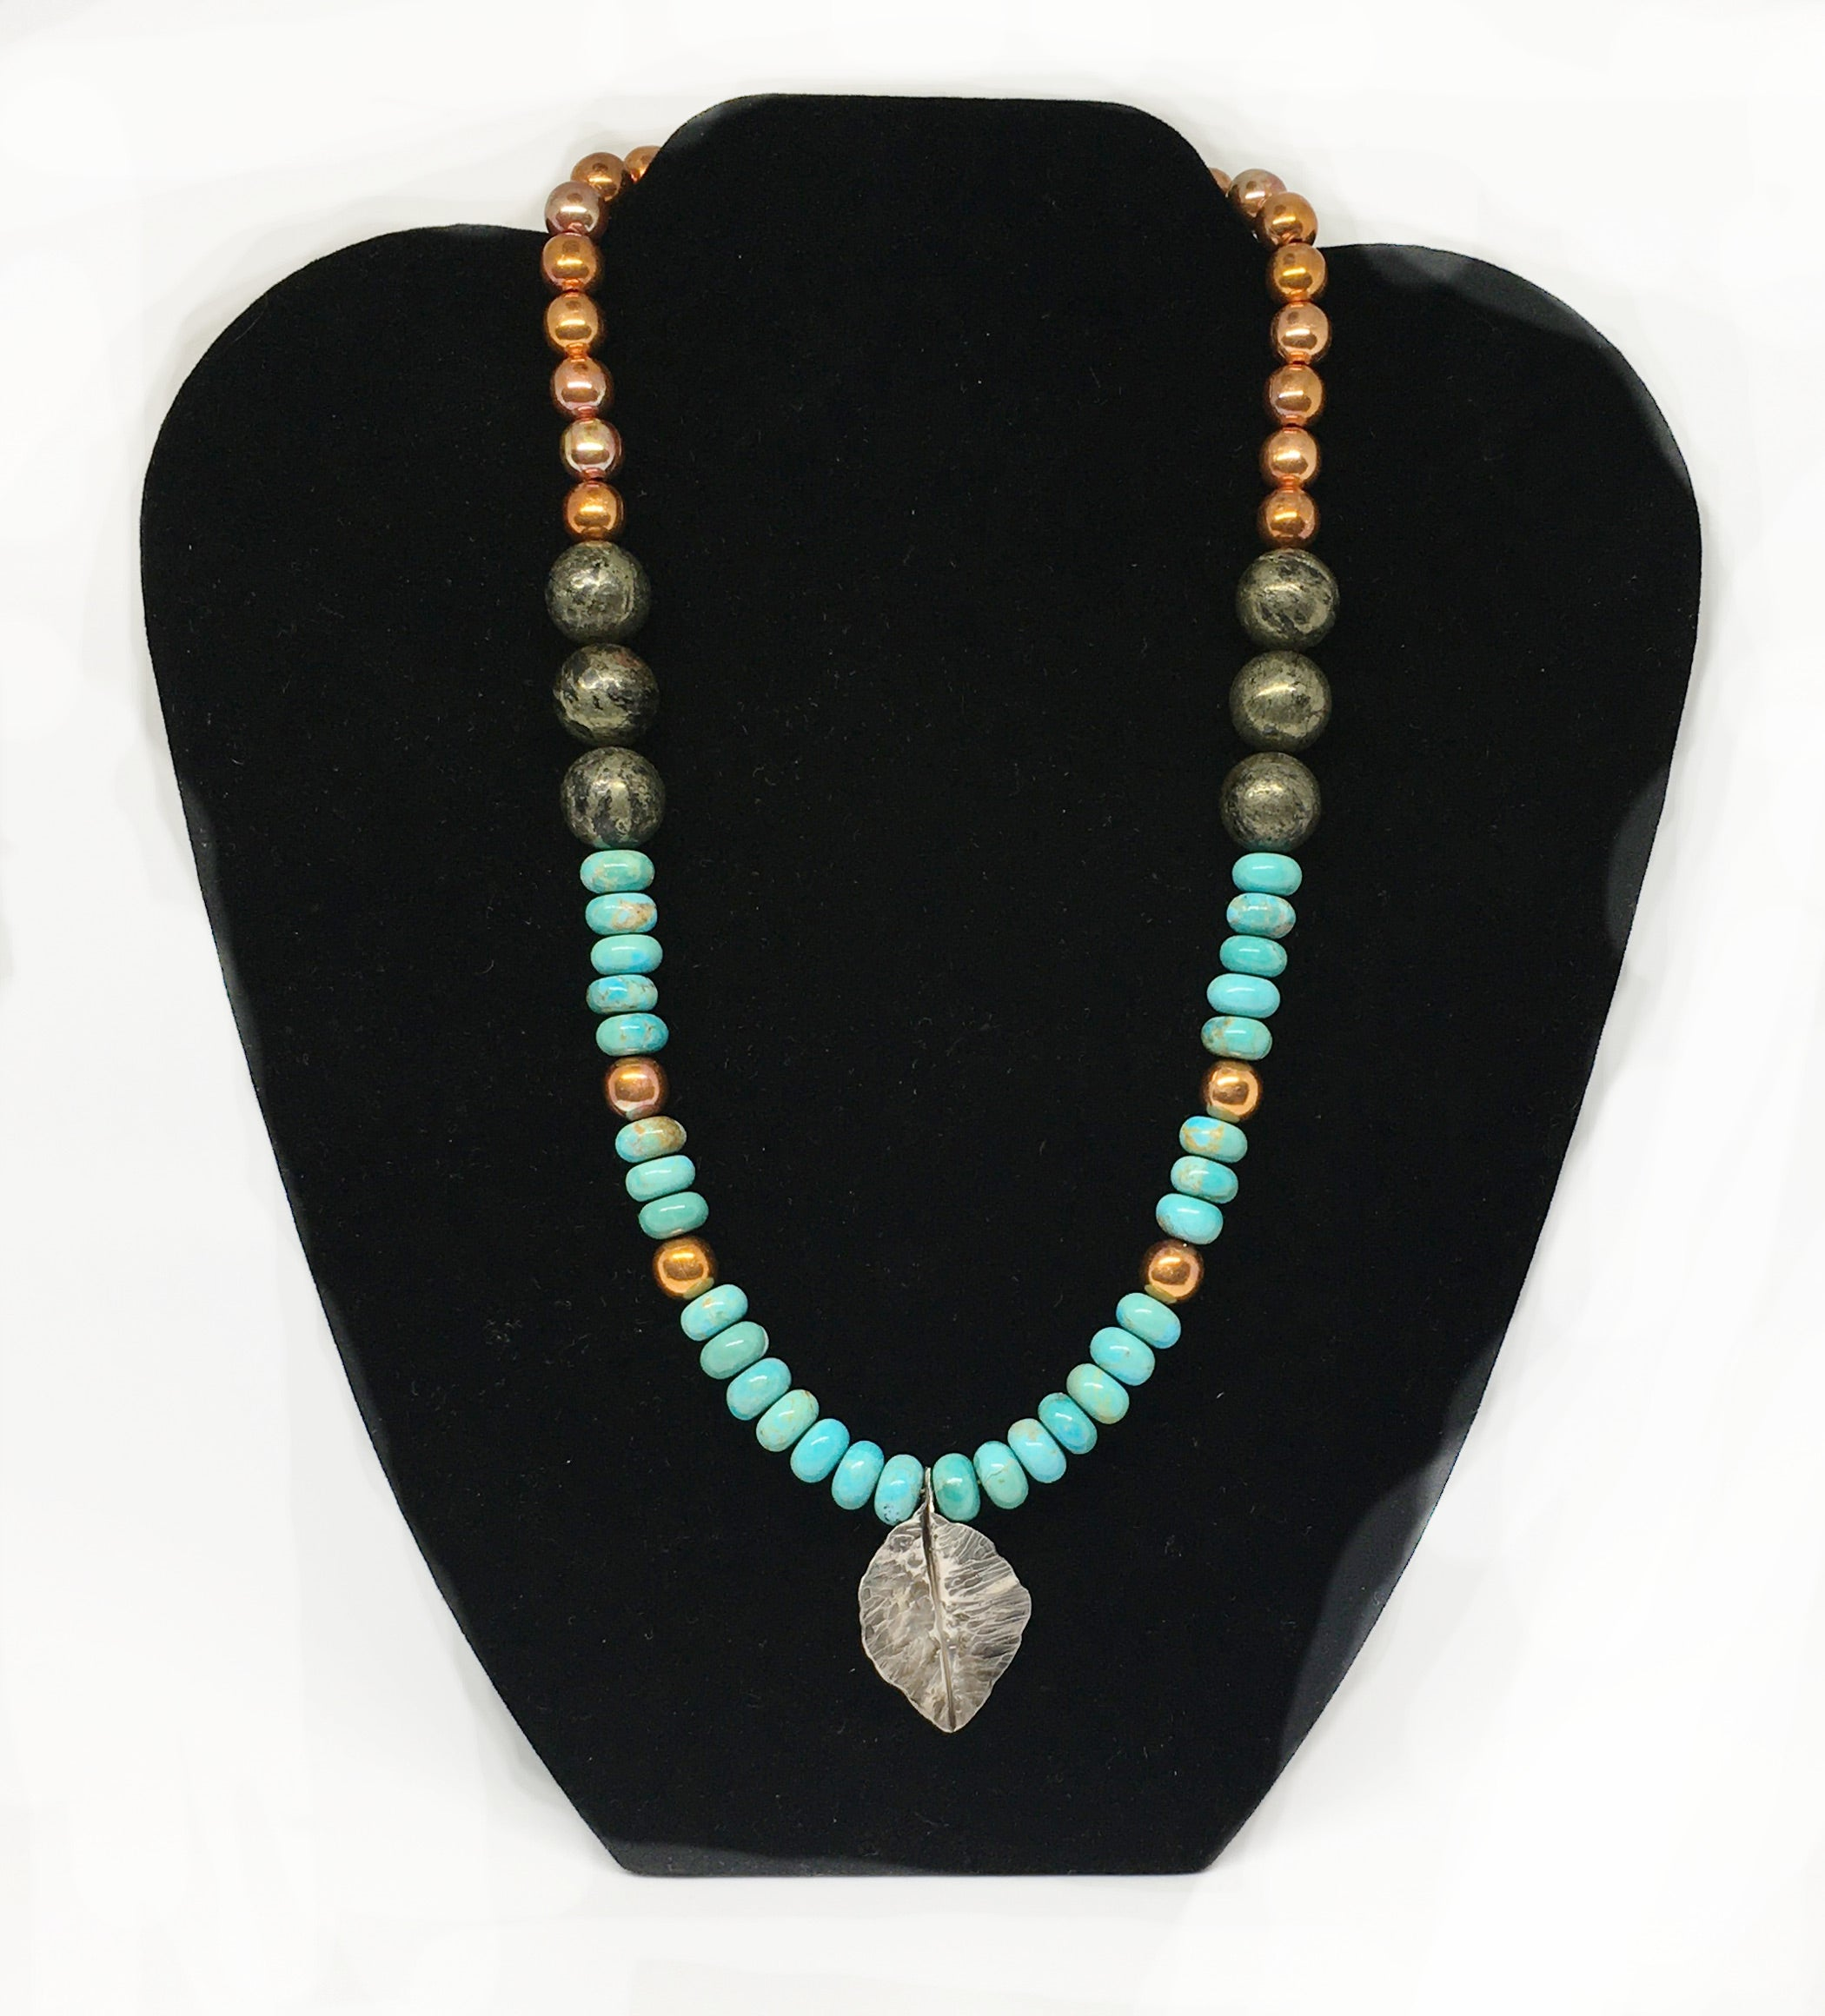 Kingman Turquoise, Apache Gold Gemstone and Flame Painted Copper Necklace with Hand Forged Silver Leaf - Sonoran Sunset Collection